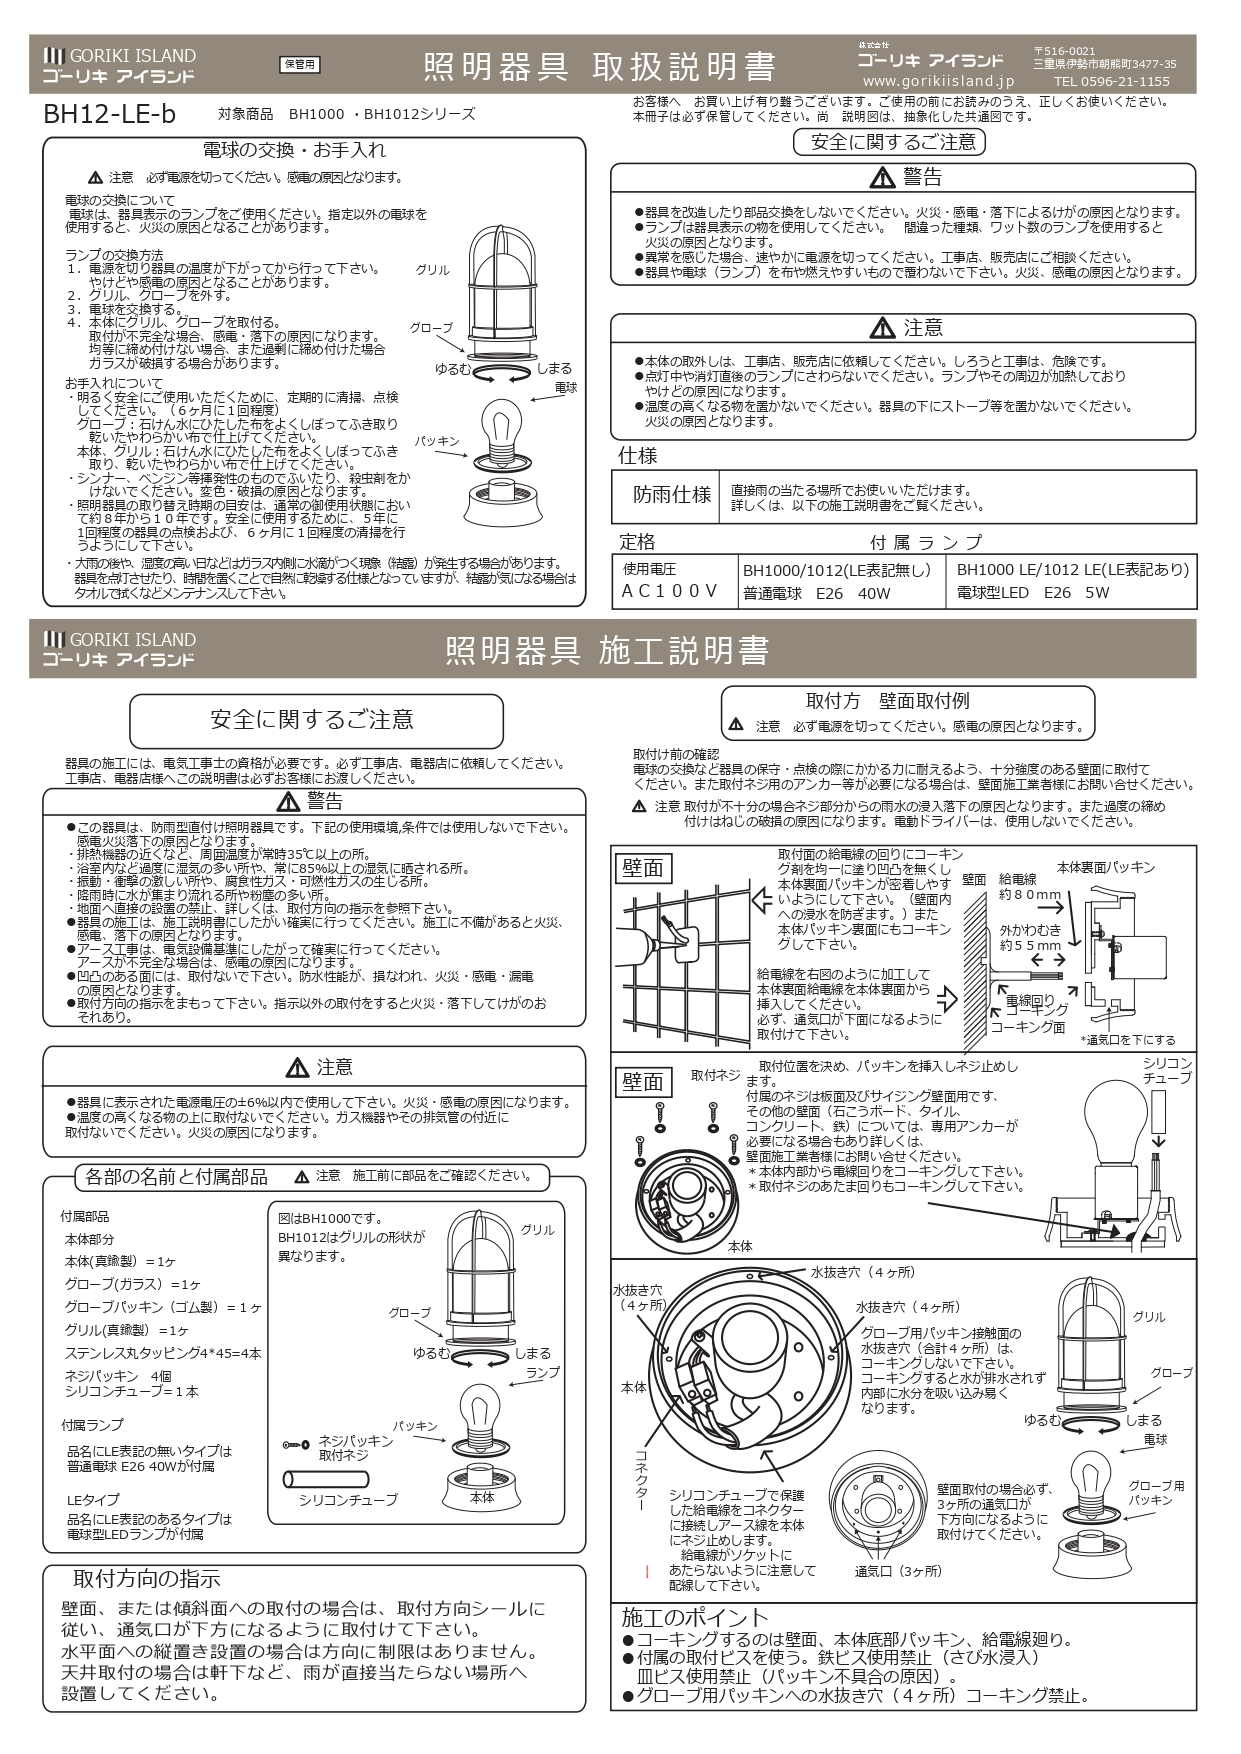 BH1000 BK Chips 施工説明書_page-0001